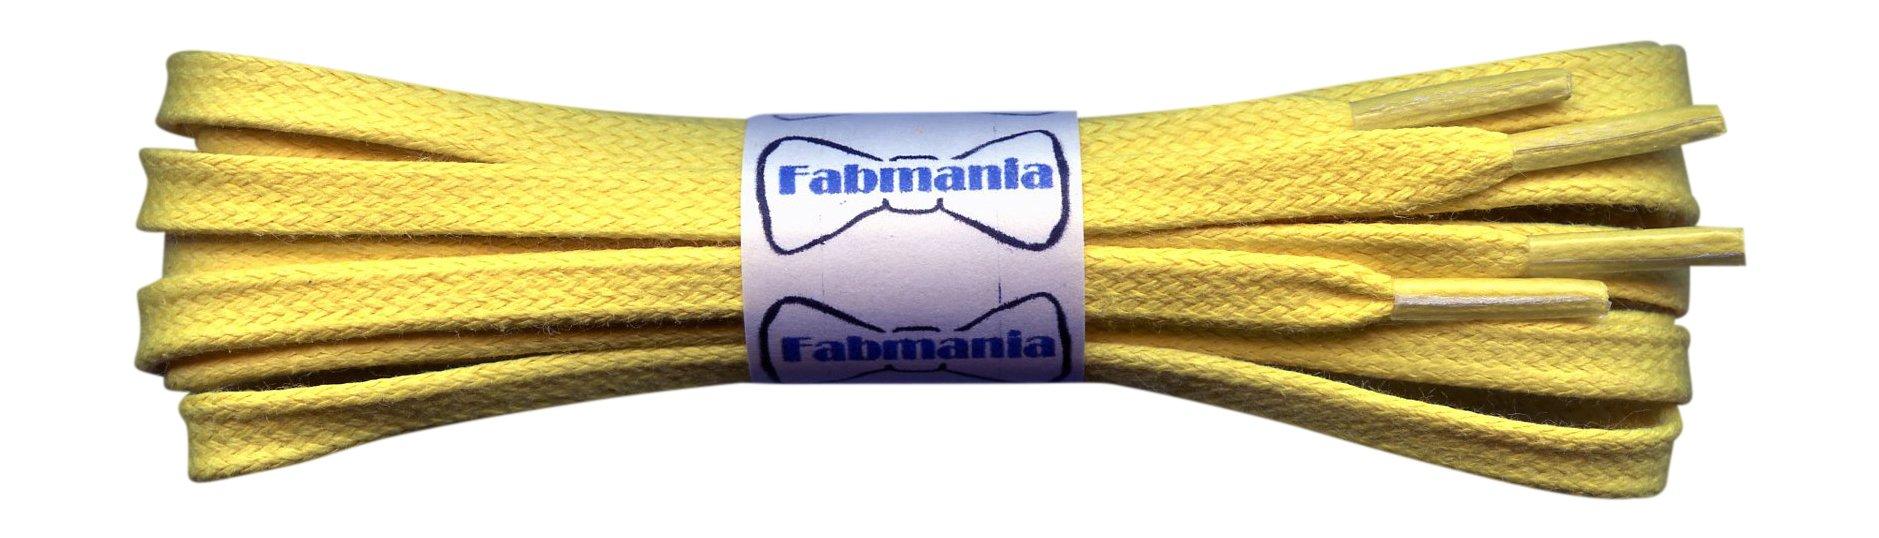 Waxed Cotton Shoelaces – 1/4'' flat – Ideal for sports and casual shoes - Yellow - length 30'' / 75 cm